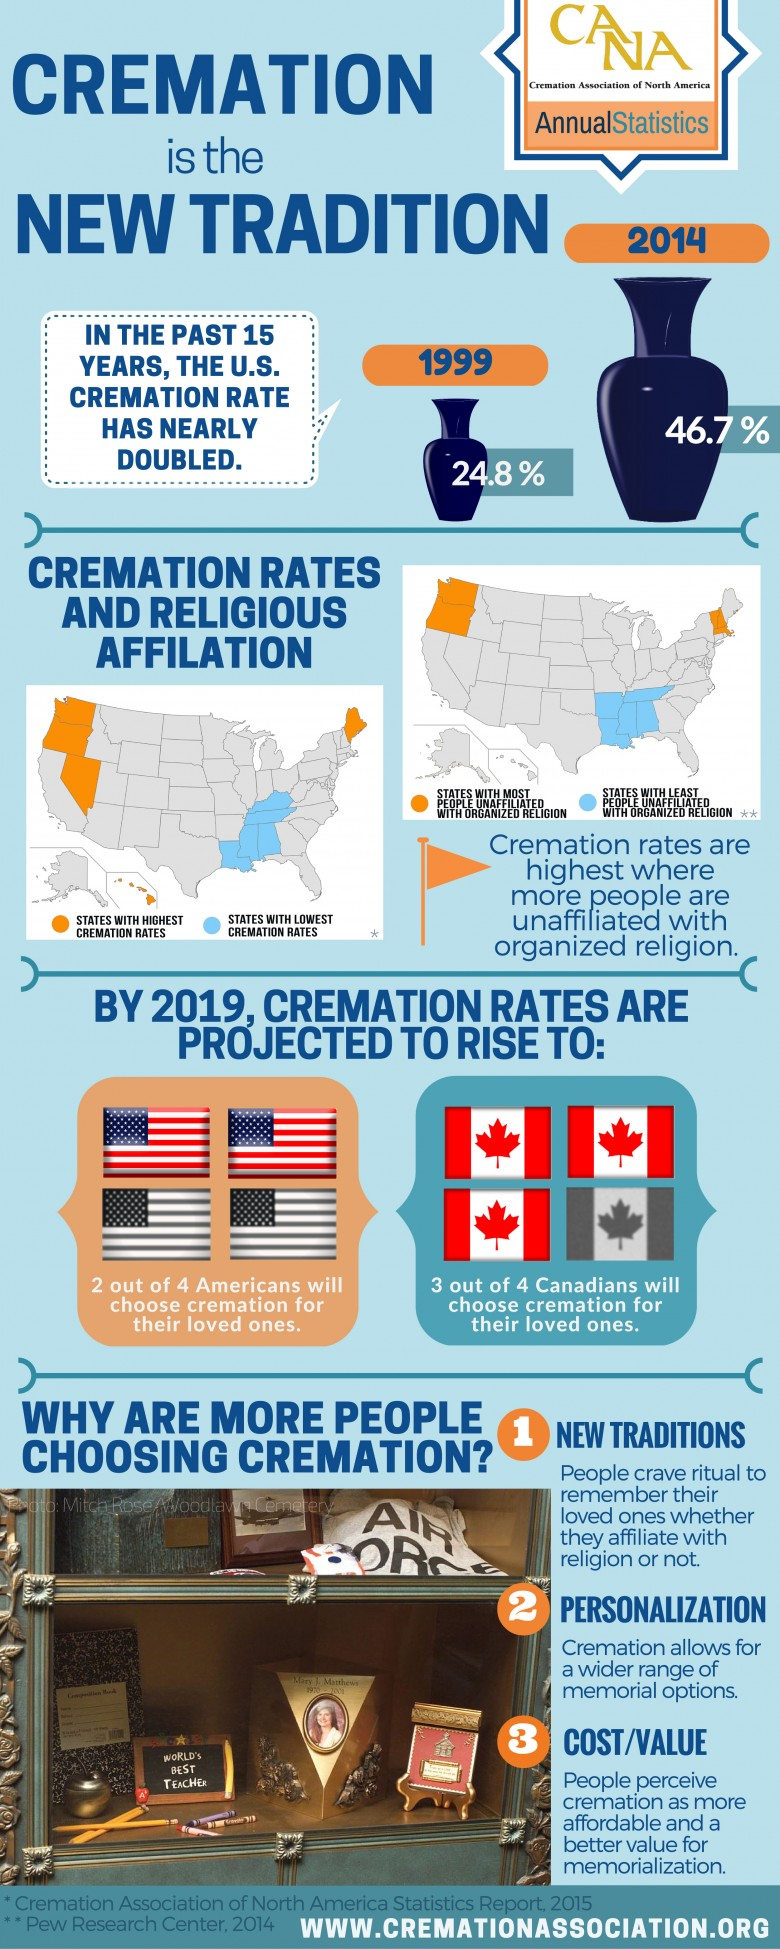 Cremation is the new tradition, CANA 2015 annual statistics